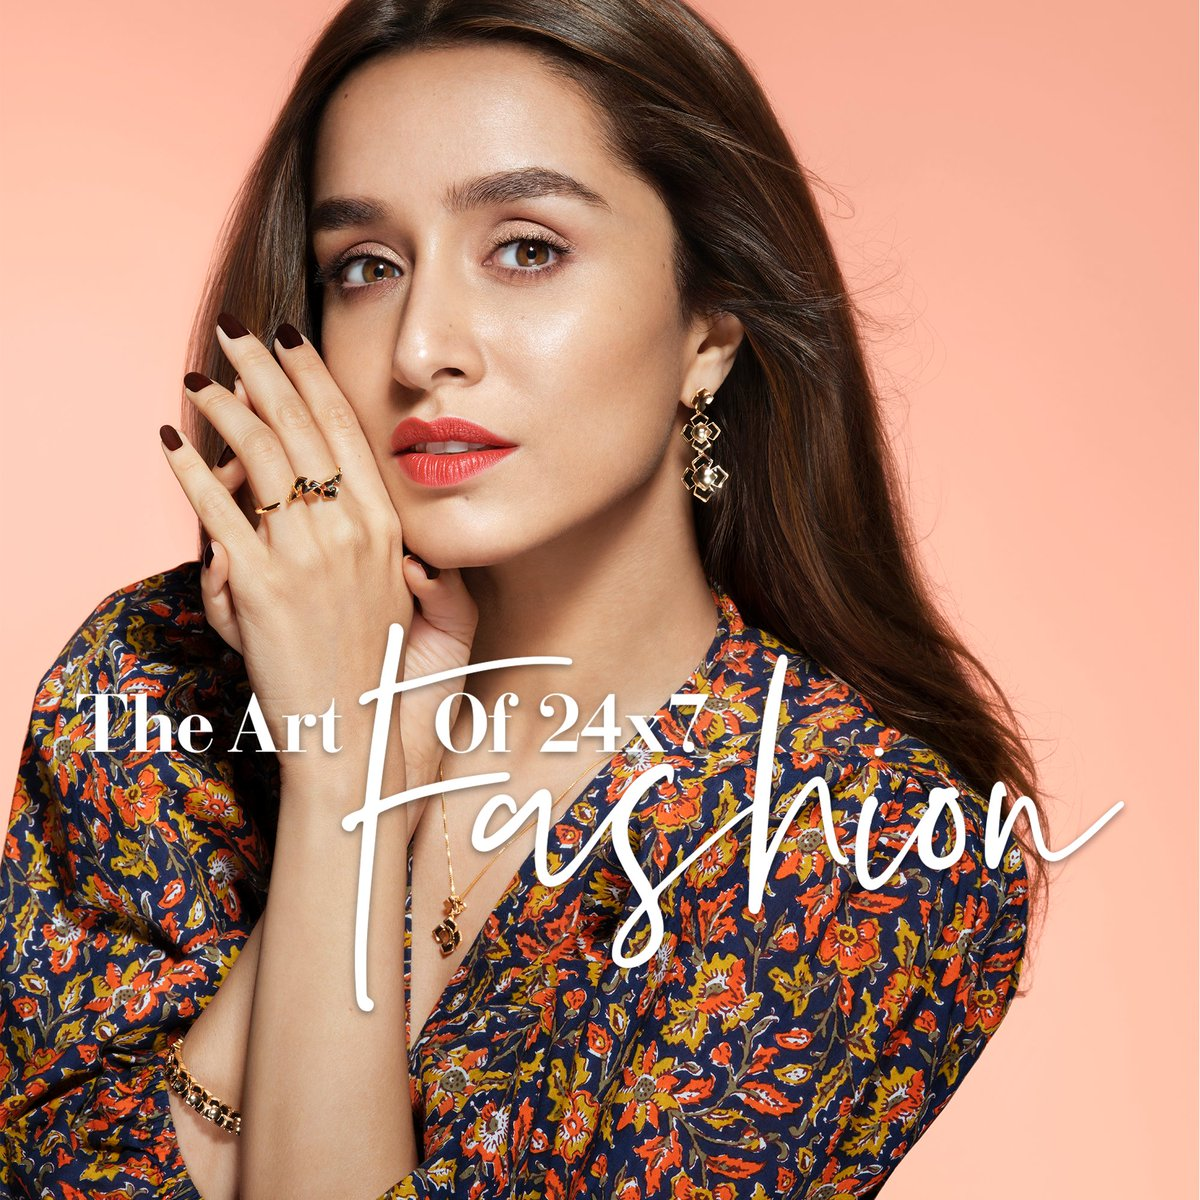 Gold jewellery, now made for your fashionable everyday. From Sunday afternoons to Friday nights - Melorra is your new trendy companion day-in and day-out. Like @ShraddhaKapoor , live the #ArtOf24x7Fashion!  Shop Now >   #Melorra #FineJewellery #ShopOnline